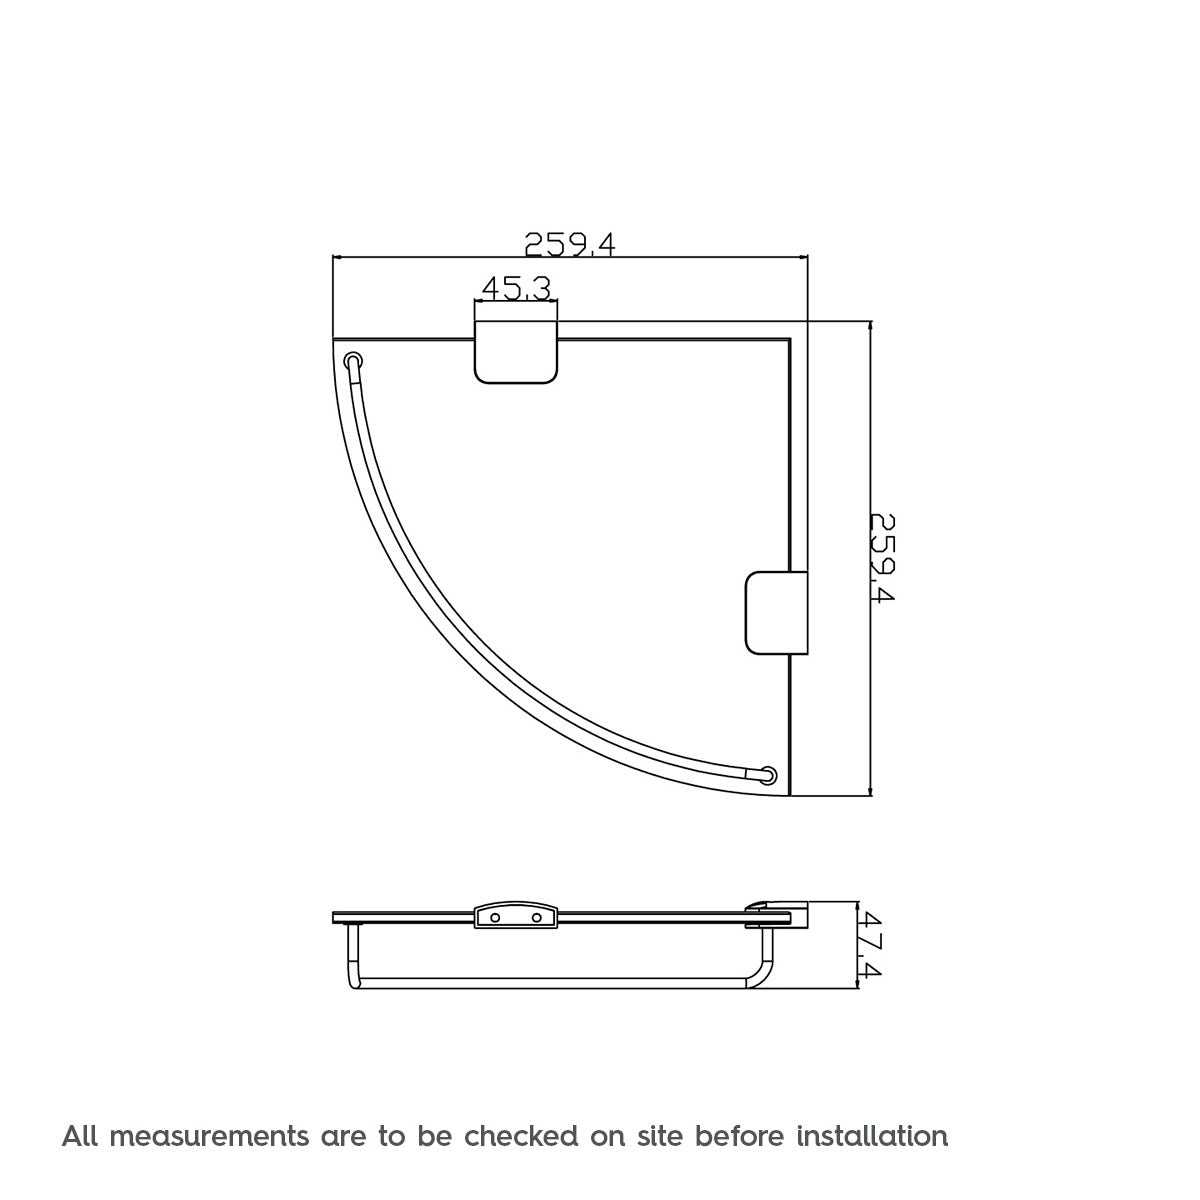 Dimensions for Orchard Options round corner glass shelf